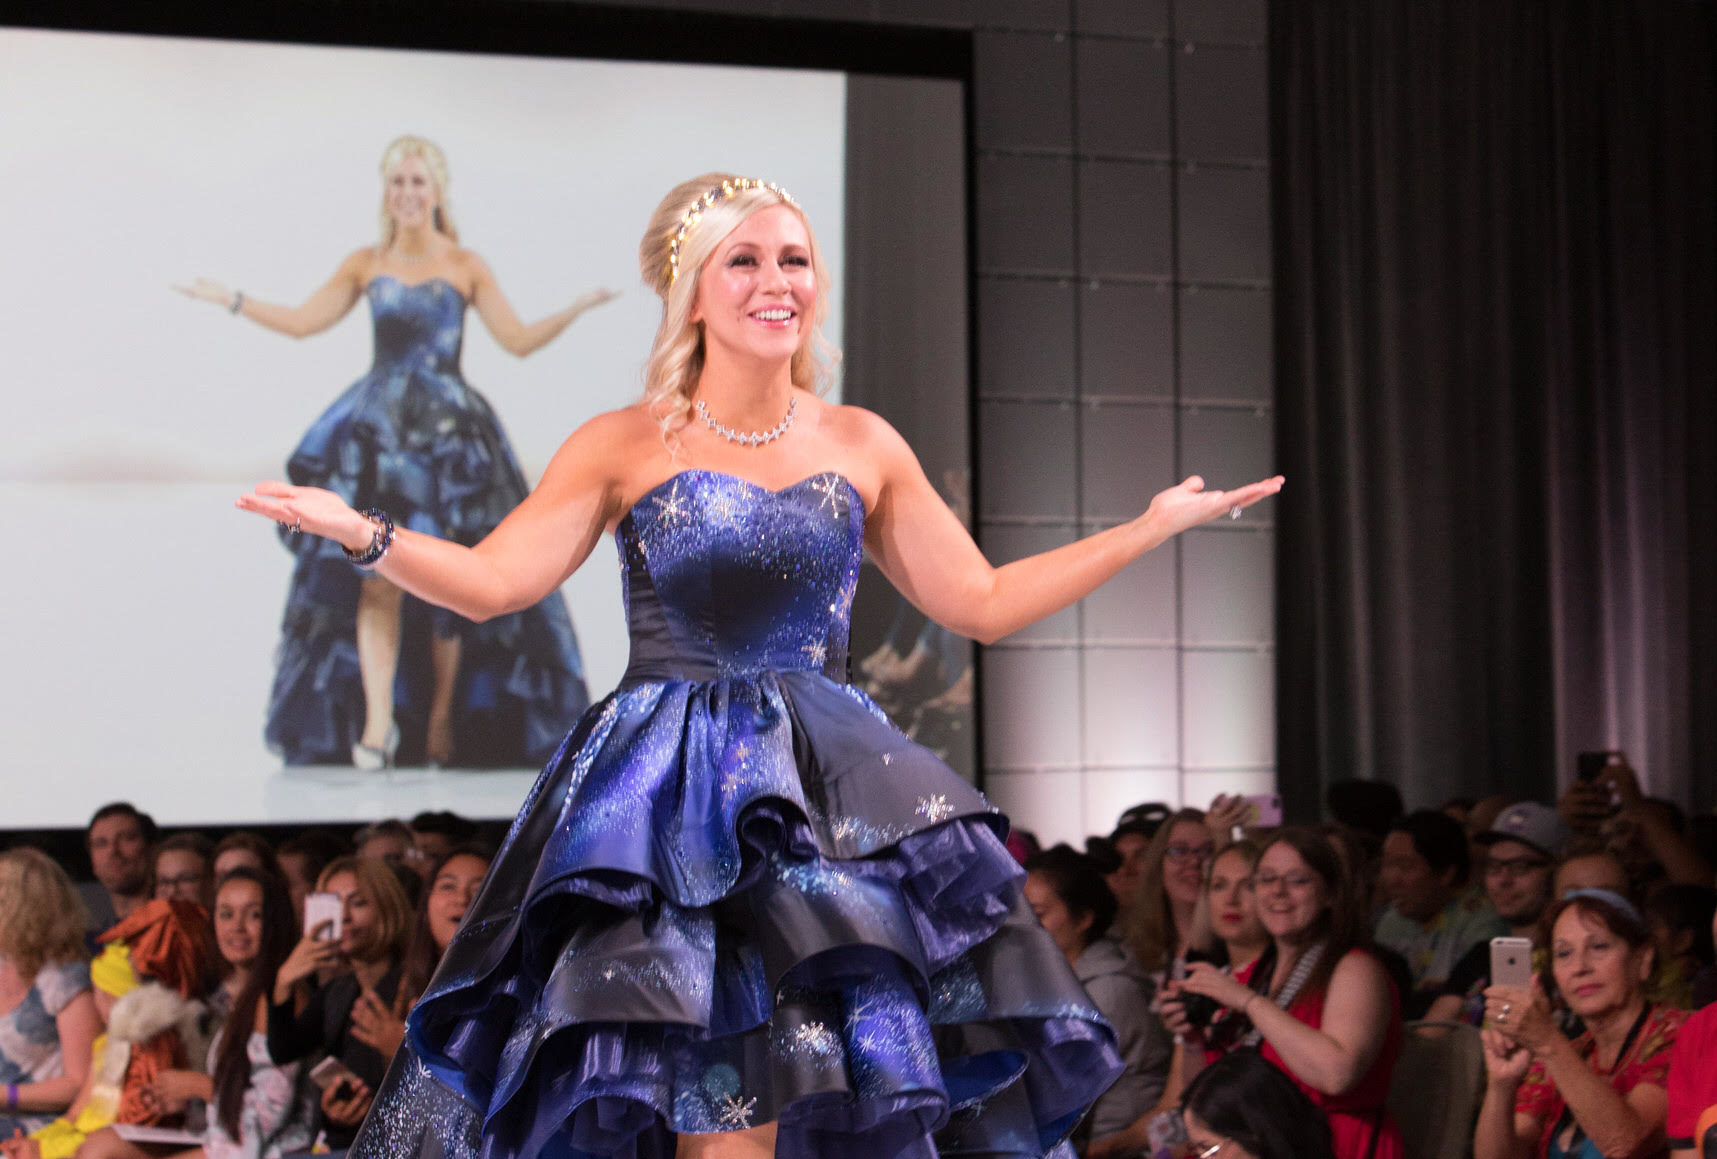 We talked with Ashley Eckstein about inspiring young girls, believing in your dreams, and upcoming Disney designs for HerUniverse